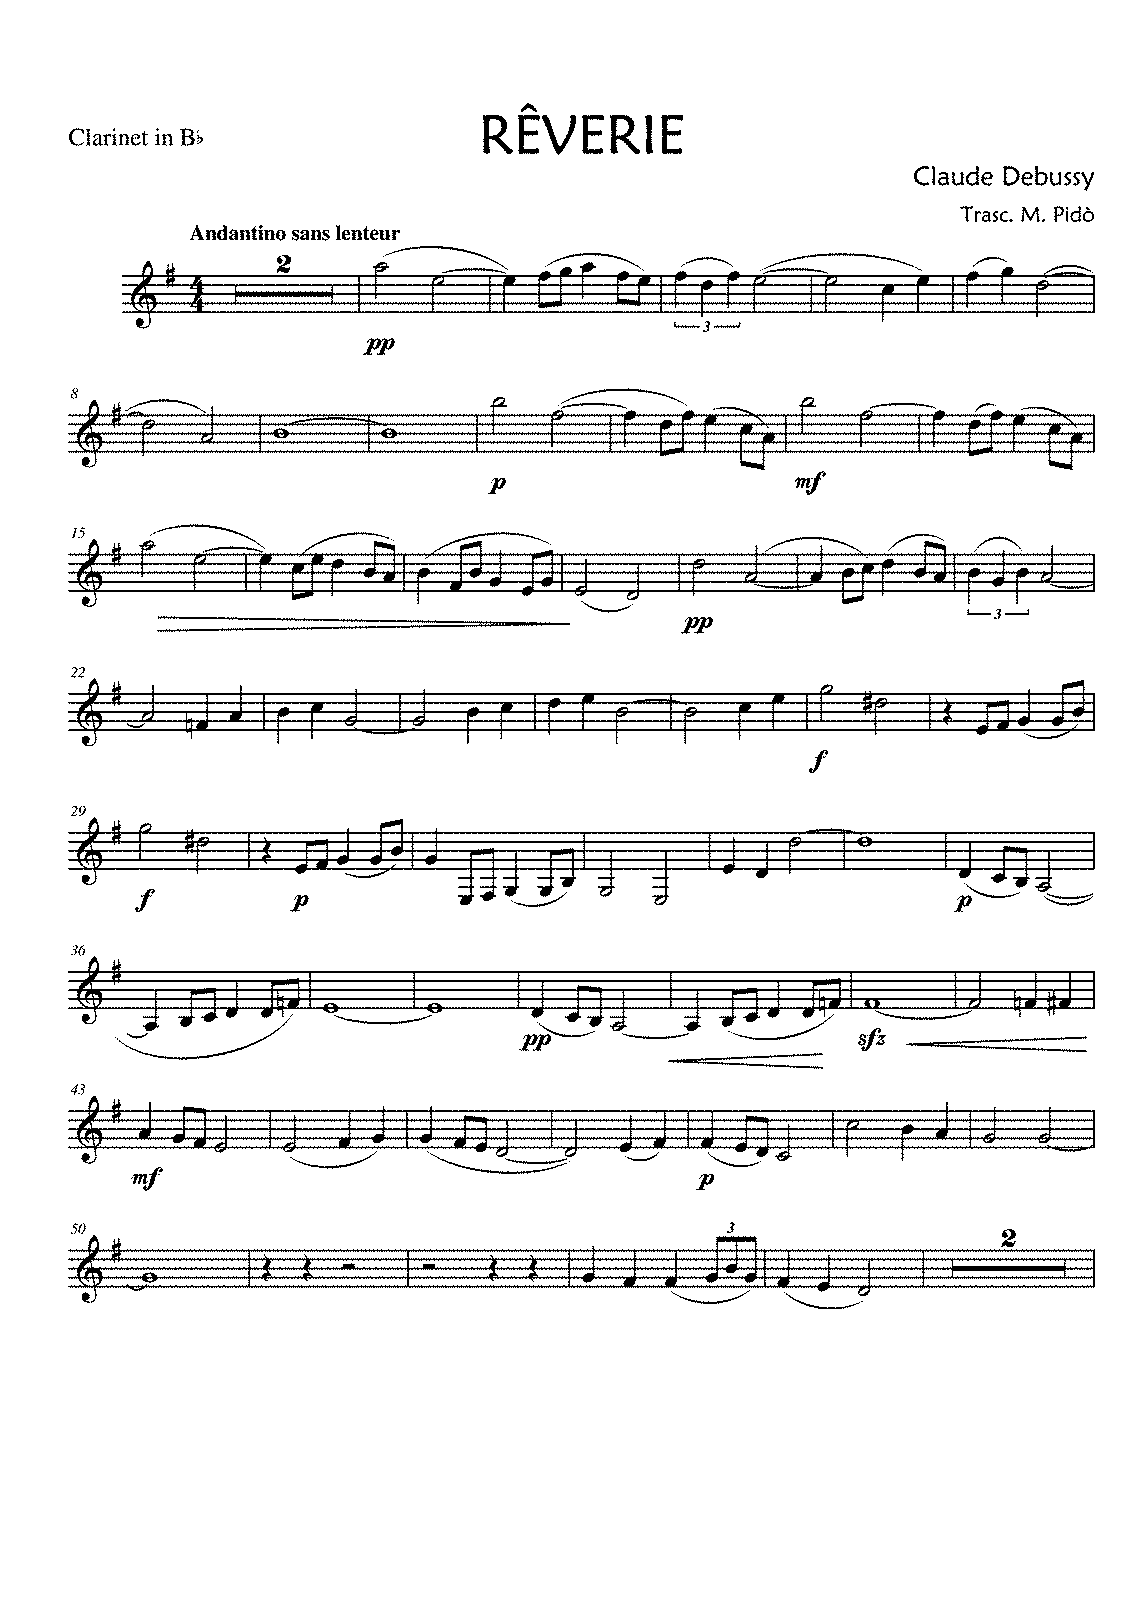 PMLP02404-Debussy Réverie Clarinet in Bb.pdf